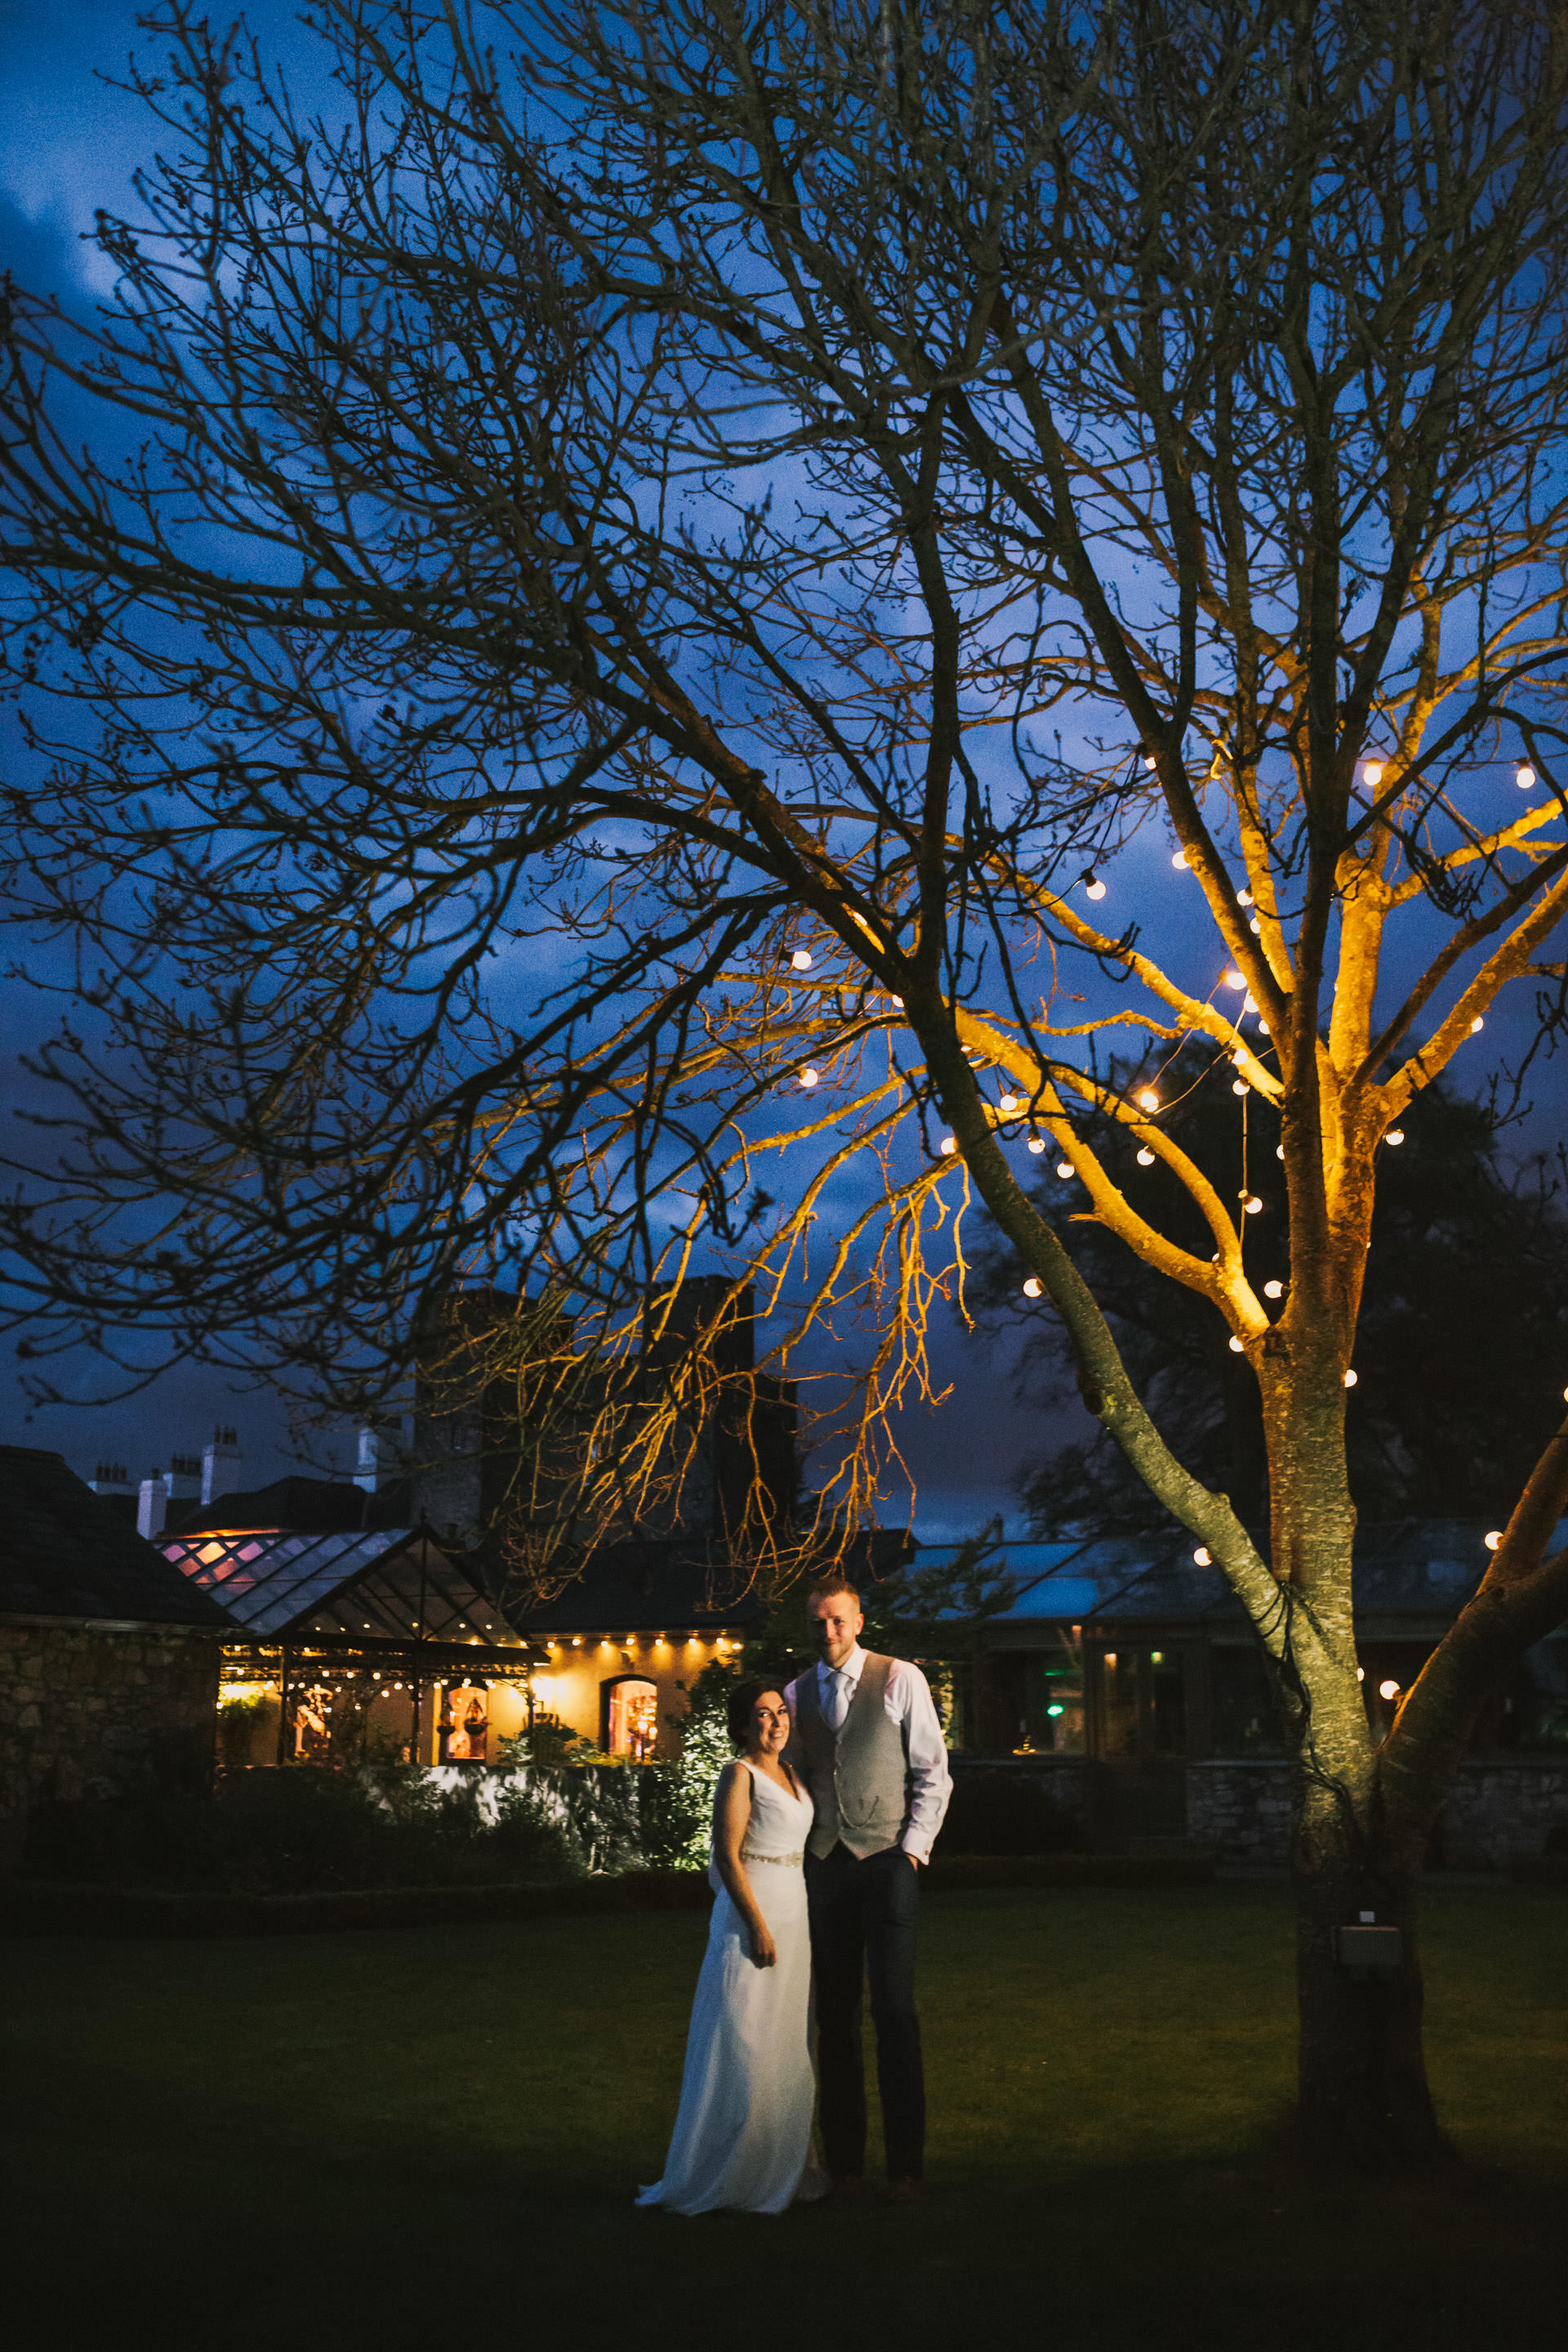 Barberstown_Castle_Wedding_Photographer_Livia_Figueiredo_764.jpg